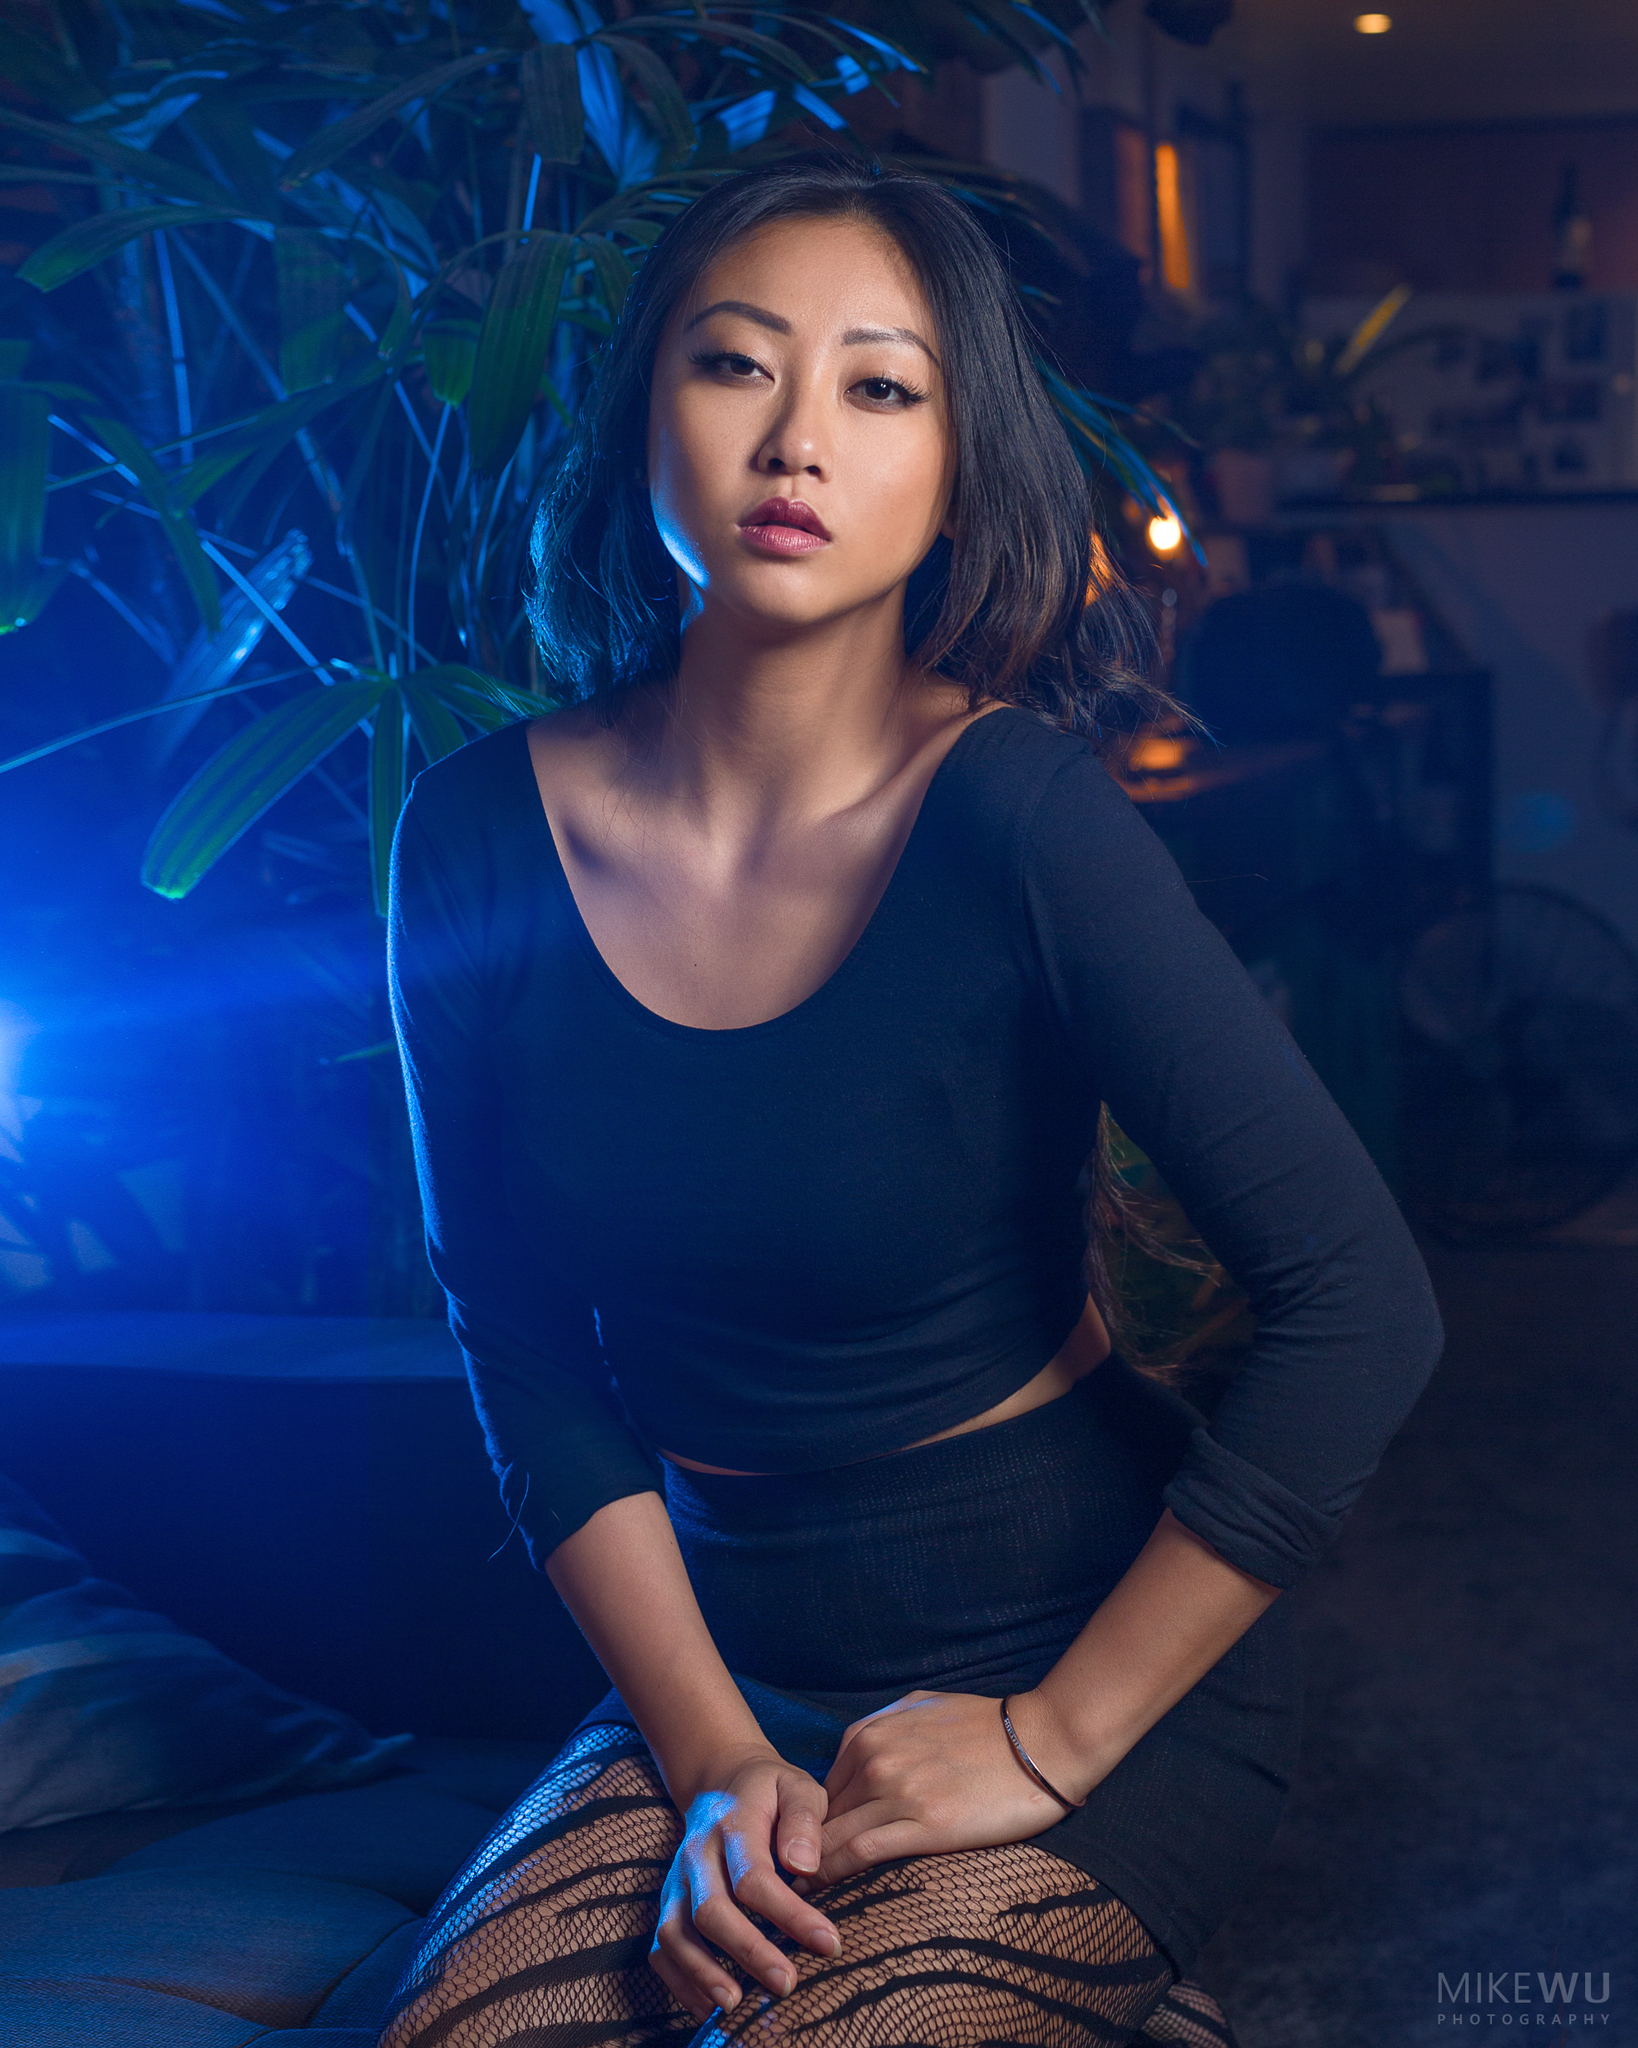 vancouver portrait photographer mike wu indoor studio photography beauty ophelia couch plant sitting night unique gel blue flare style